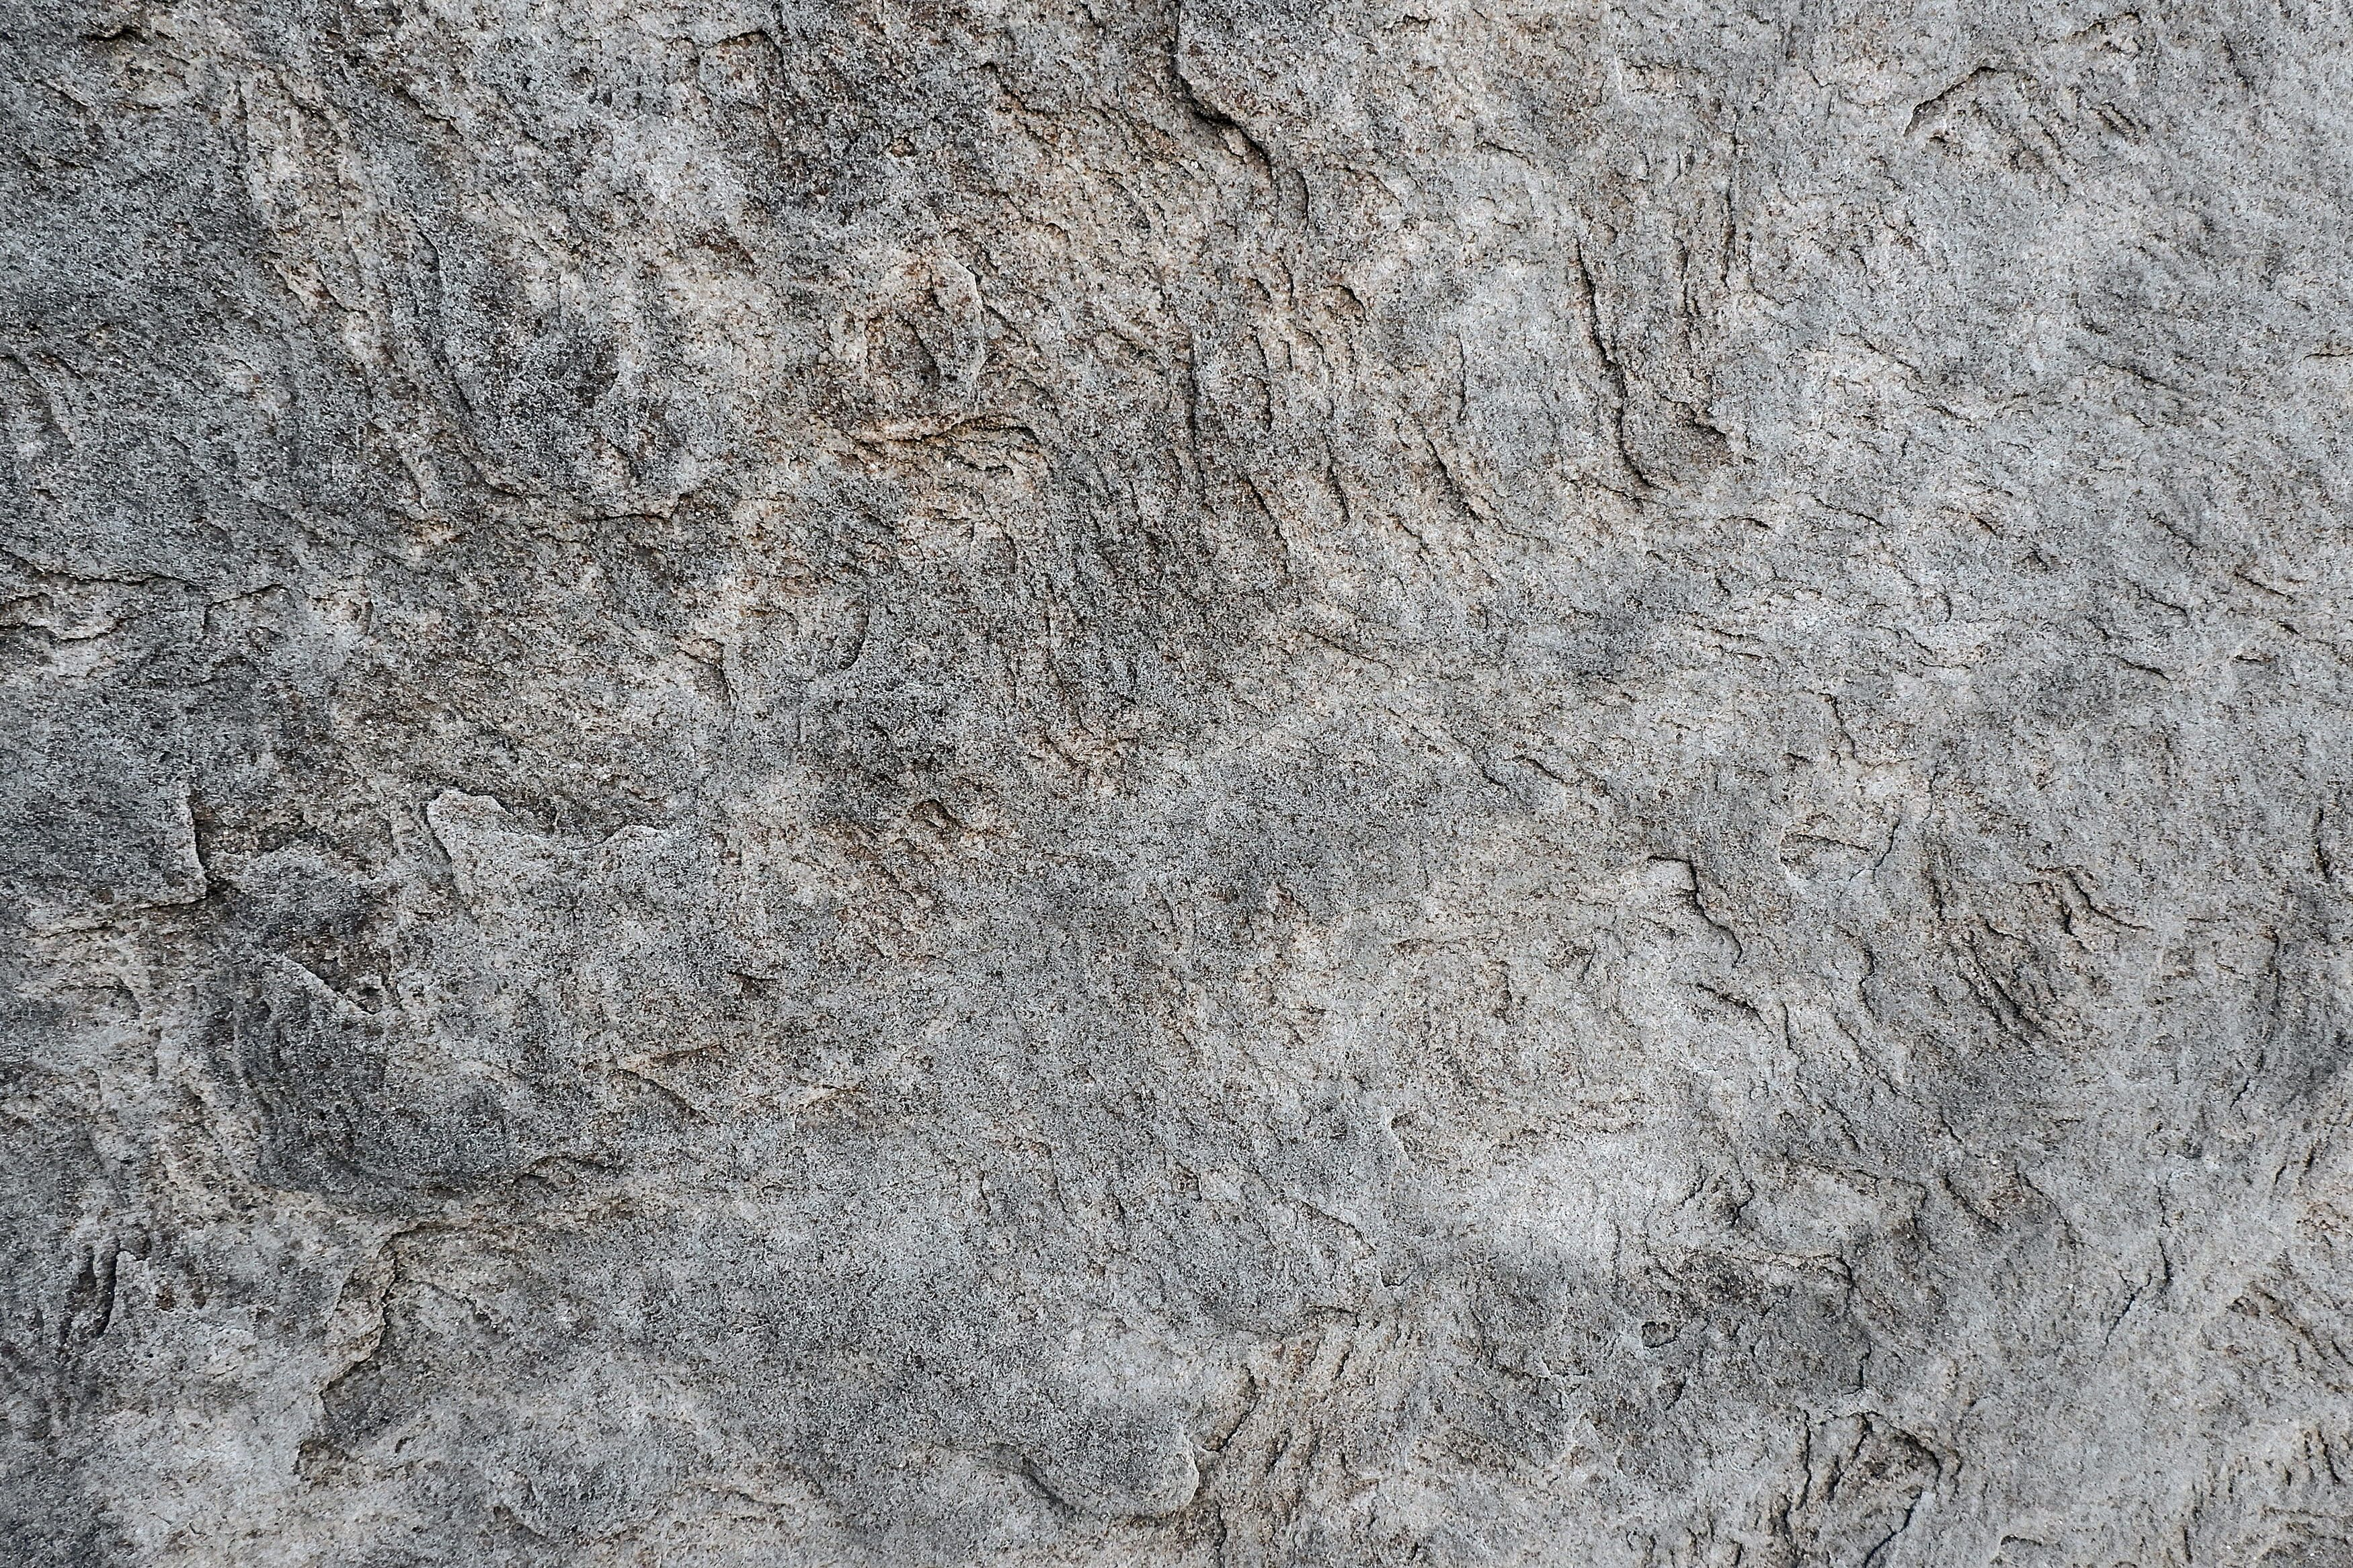 Grey Surface Rock Texture Concrete Rug Ground Slate 4k Textured Background Most Beautiful Wallpaper Free Texture Backgrounds